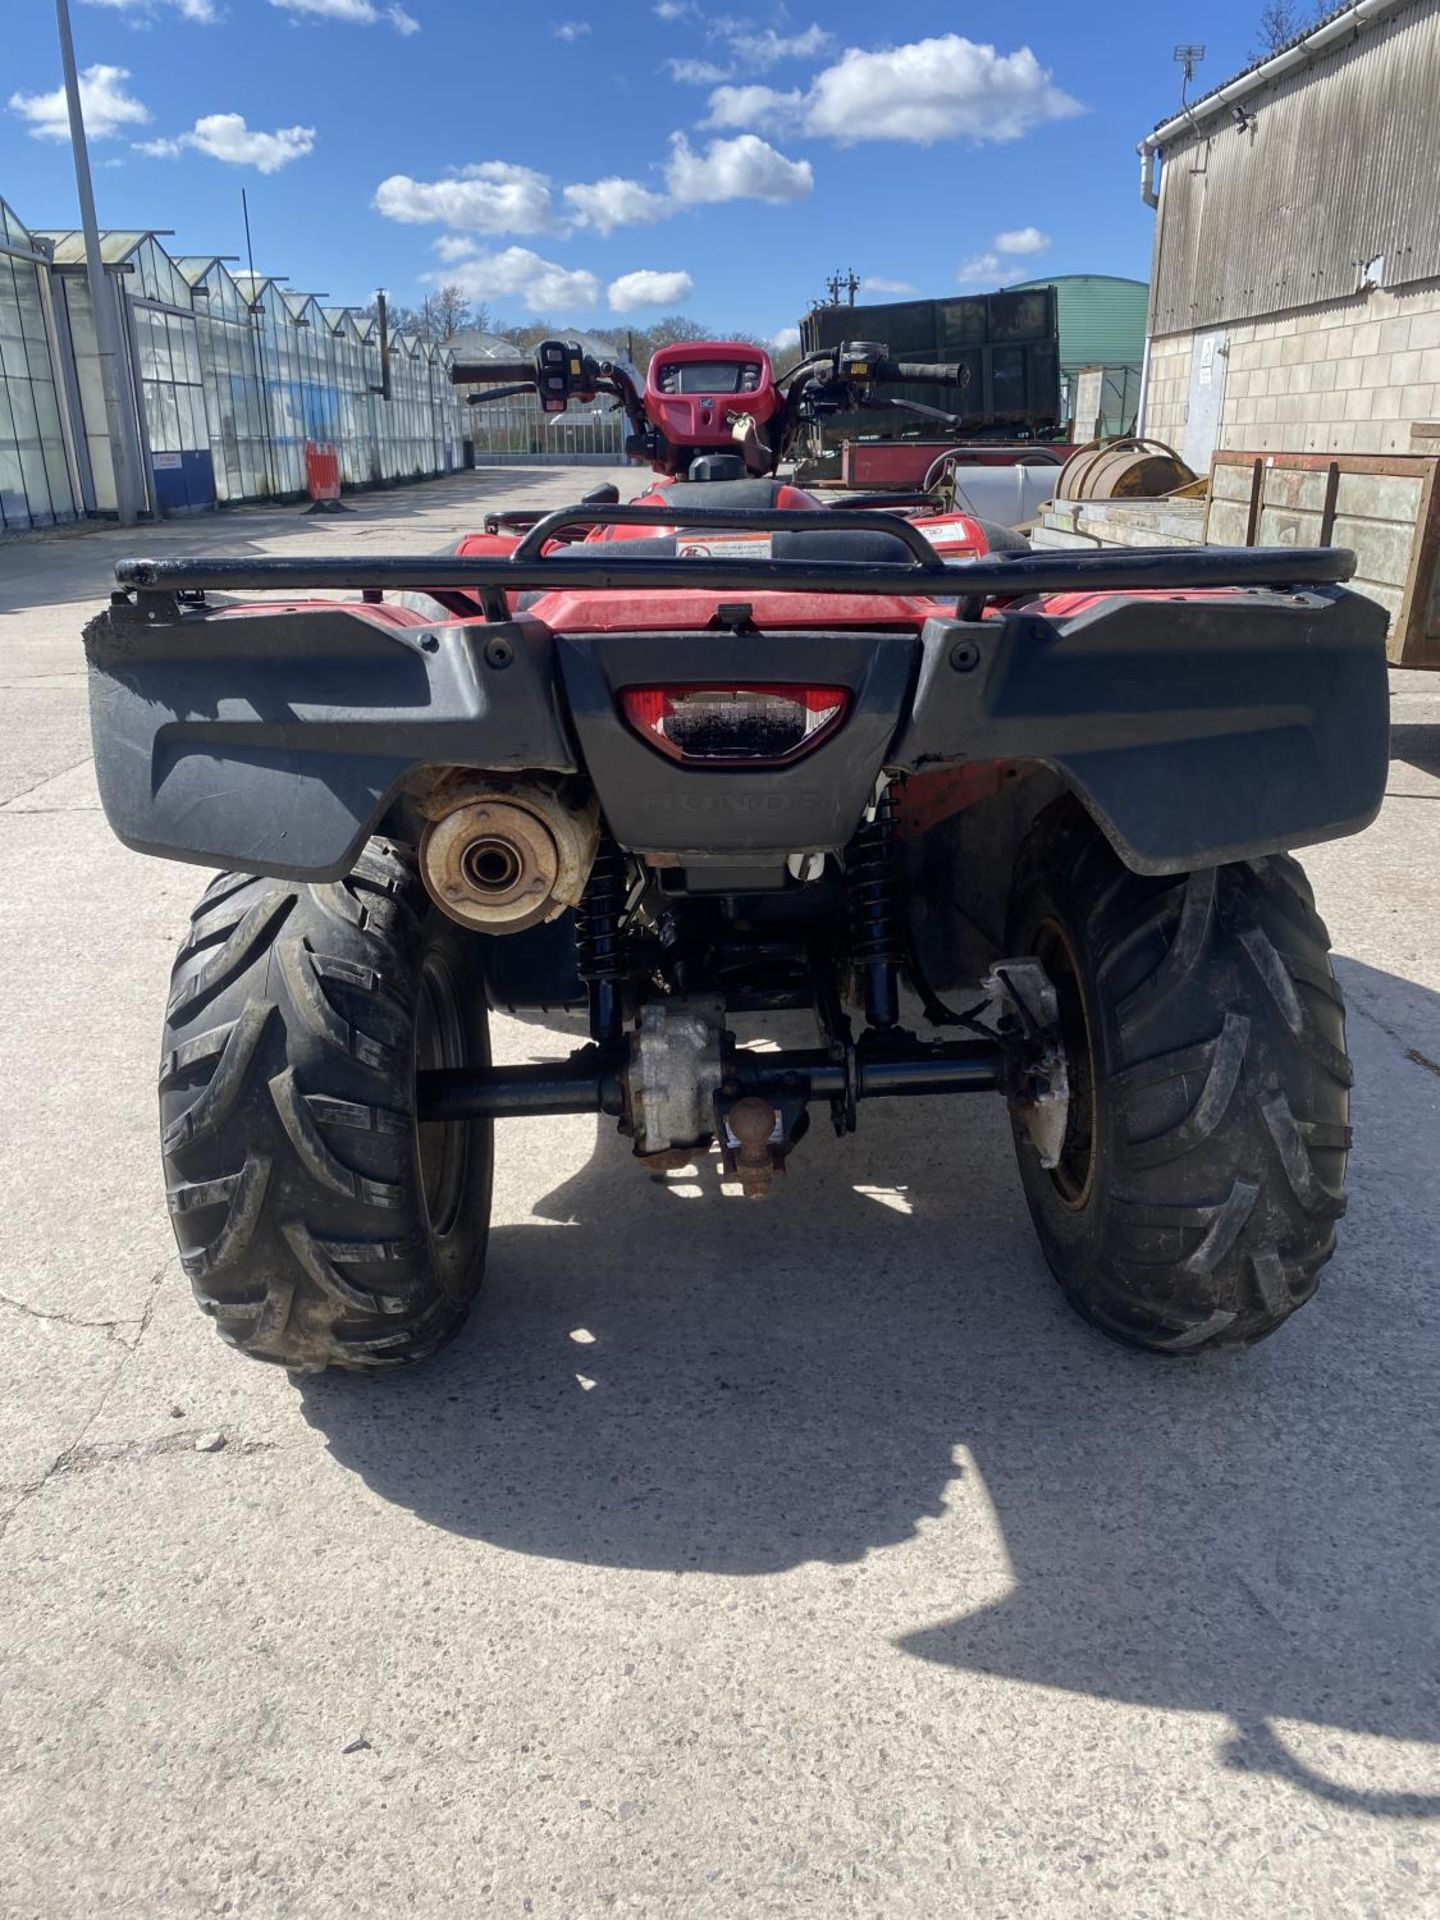 A HONDA TRX FOREMAN 500 CC QUAD BIKE - SEE VIDEO OF VEHICLE STARTING AND RUNNING AT https://www. - Image 7 of 8